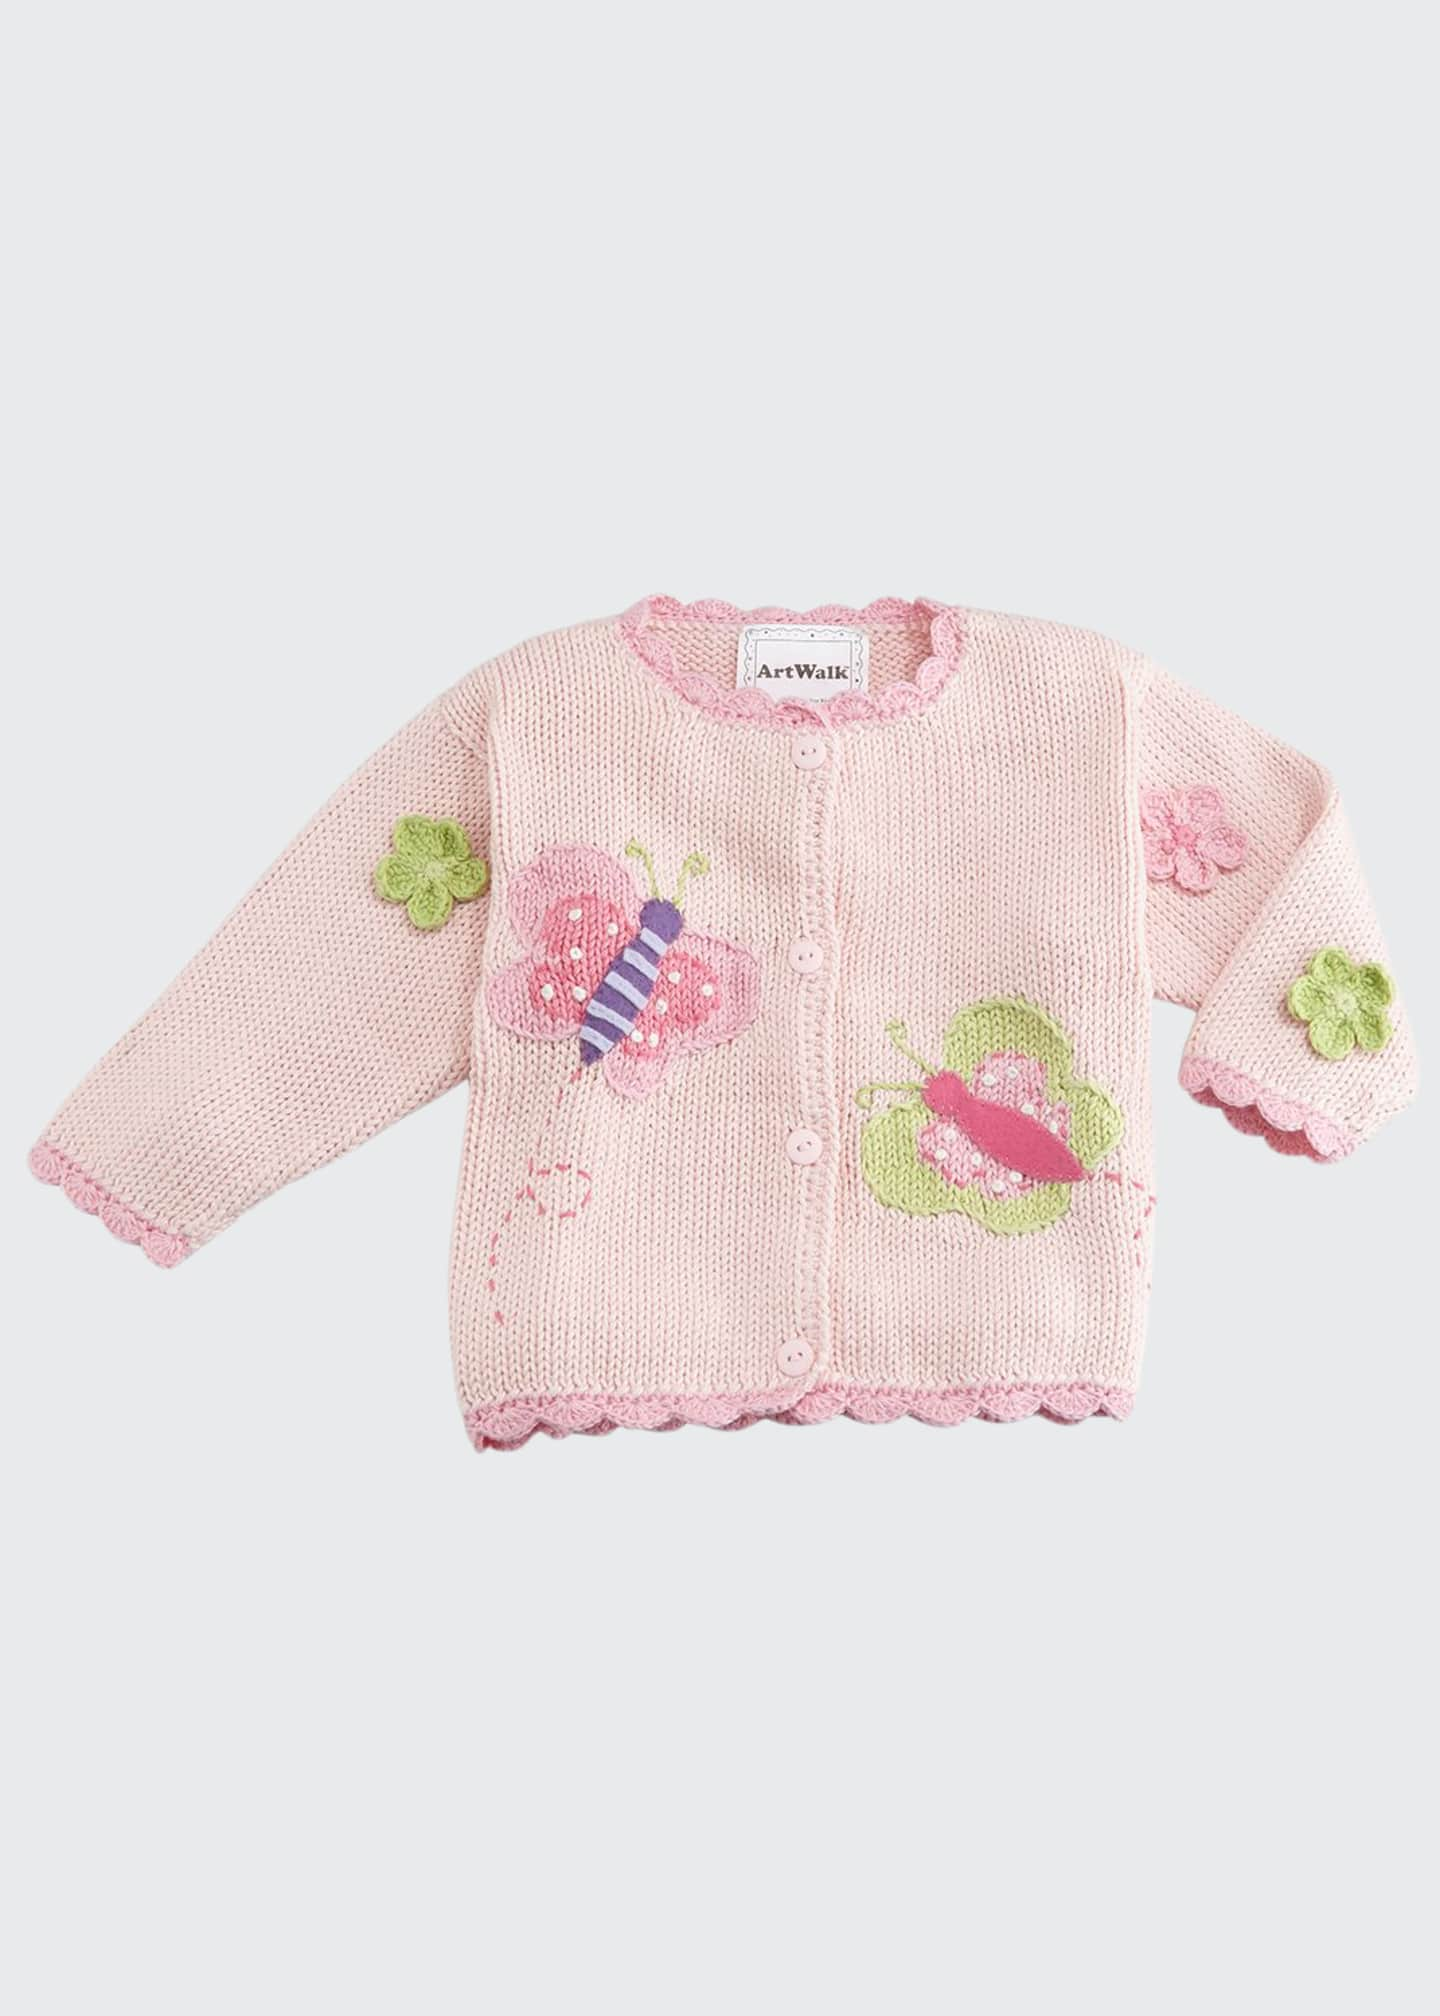 Art Walk Butterflies Cotton Button-Front Sweater, Pink, Size